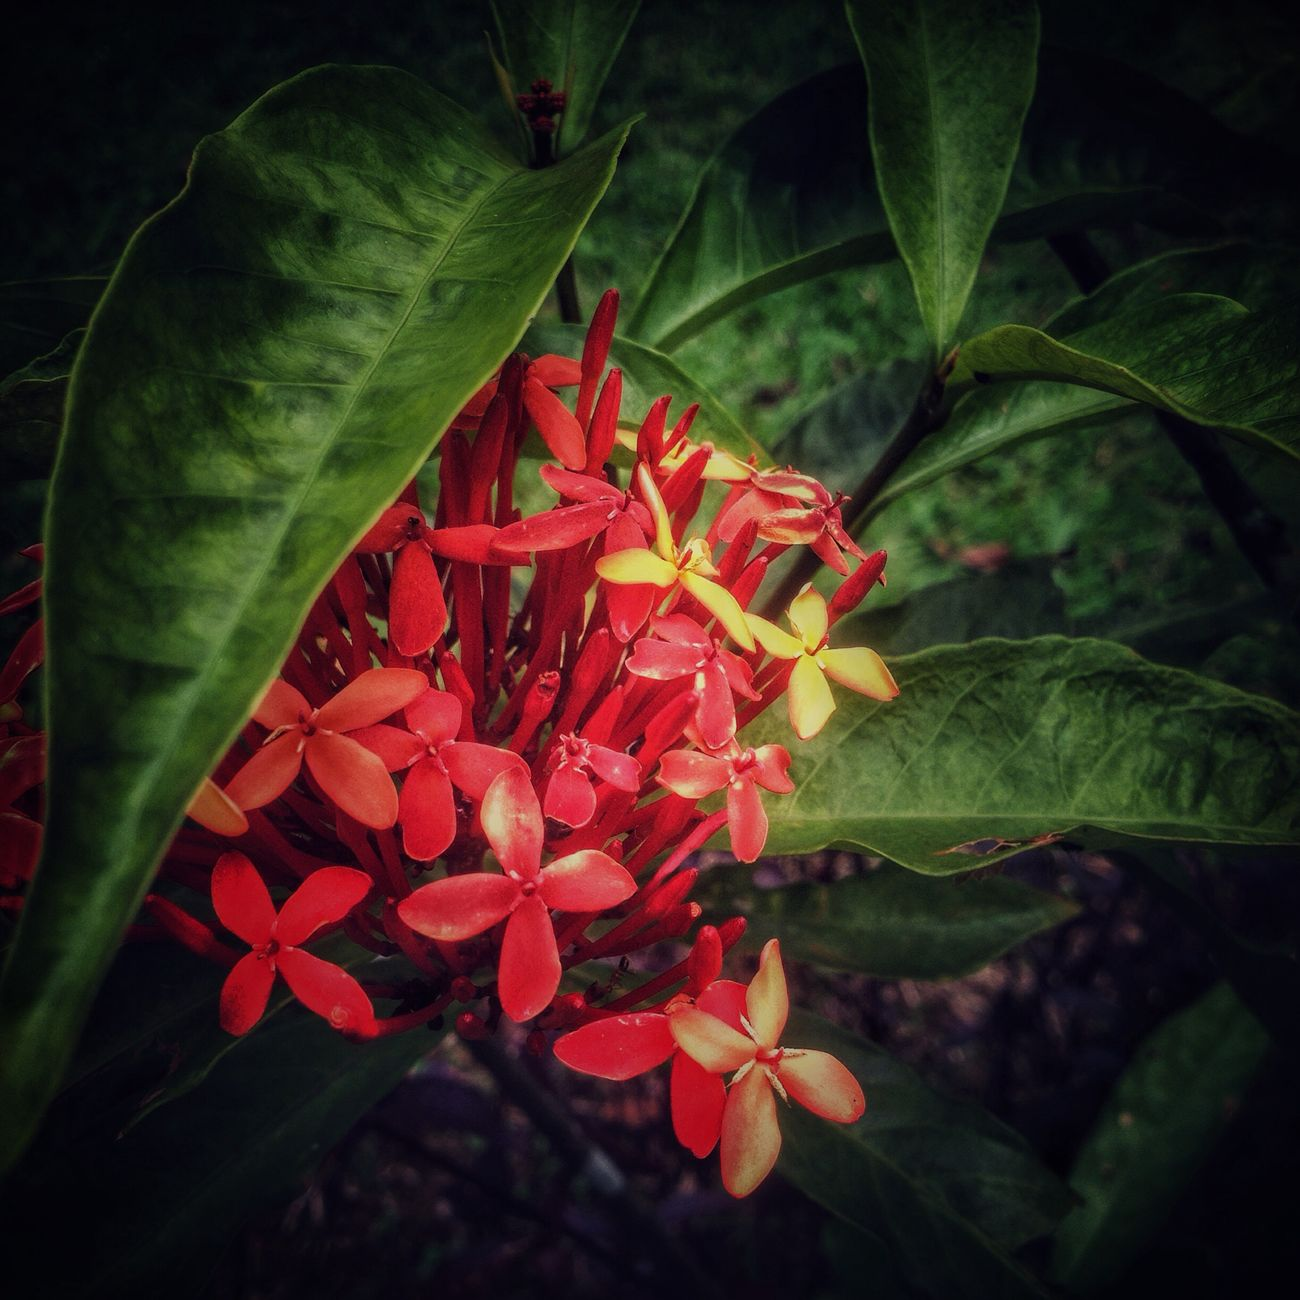 Flower Collection Leaf 🍂 Flower Red Nature Growth Beauty In Nature Petal Freshness Plant Ixora Leaf Flower Head Fragility Close-up Blooming No People Outdoors Day EyeEmFlower Eye4photography  Fromwhereistand EyeEm Nature Lover From My Point Of View EyeEmNewHere